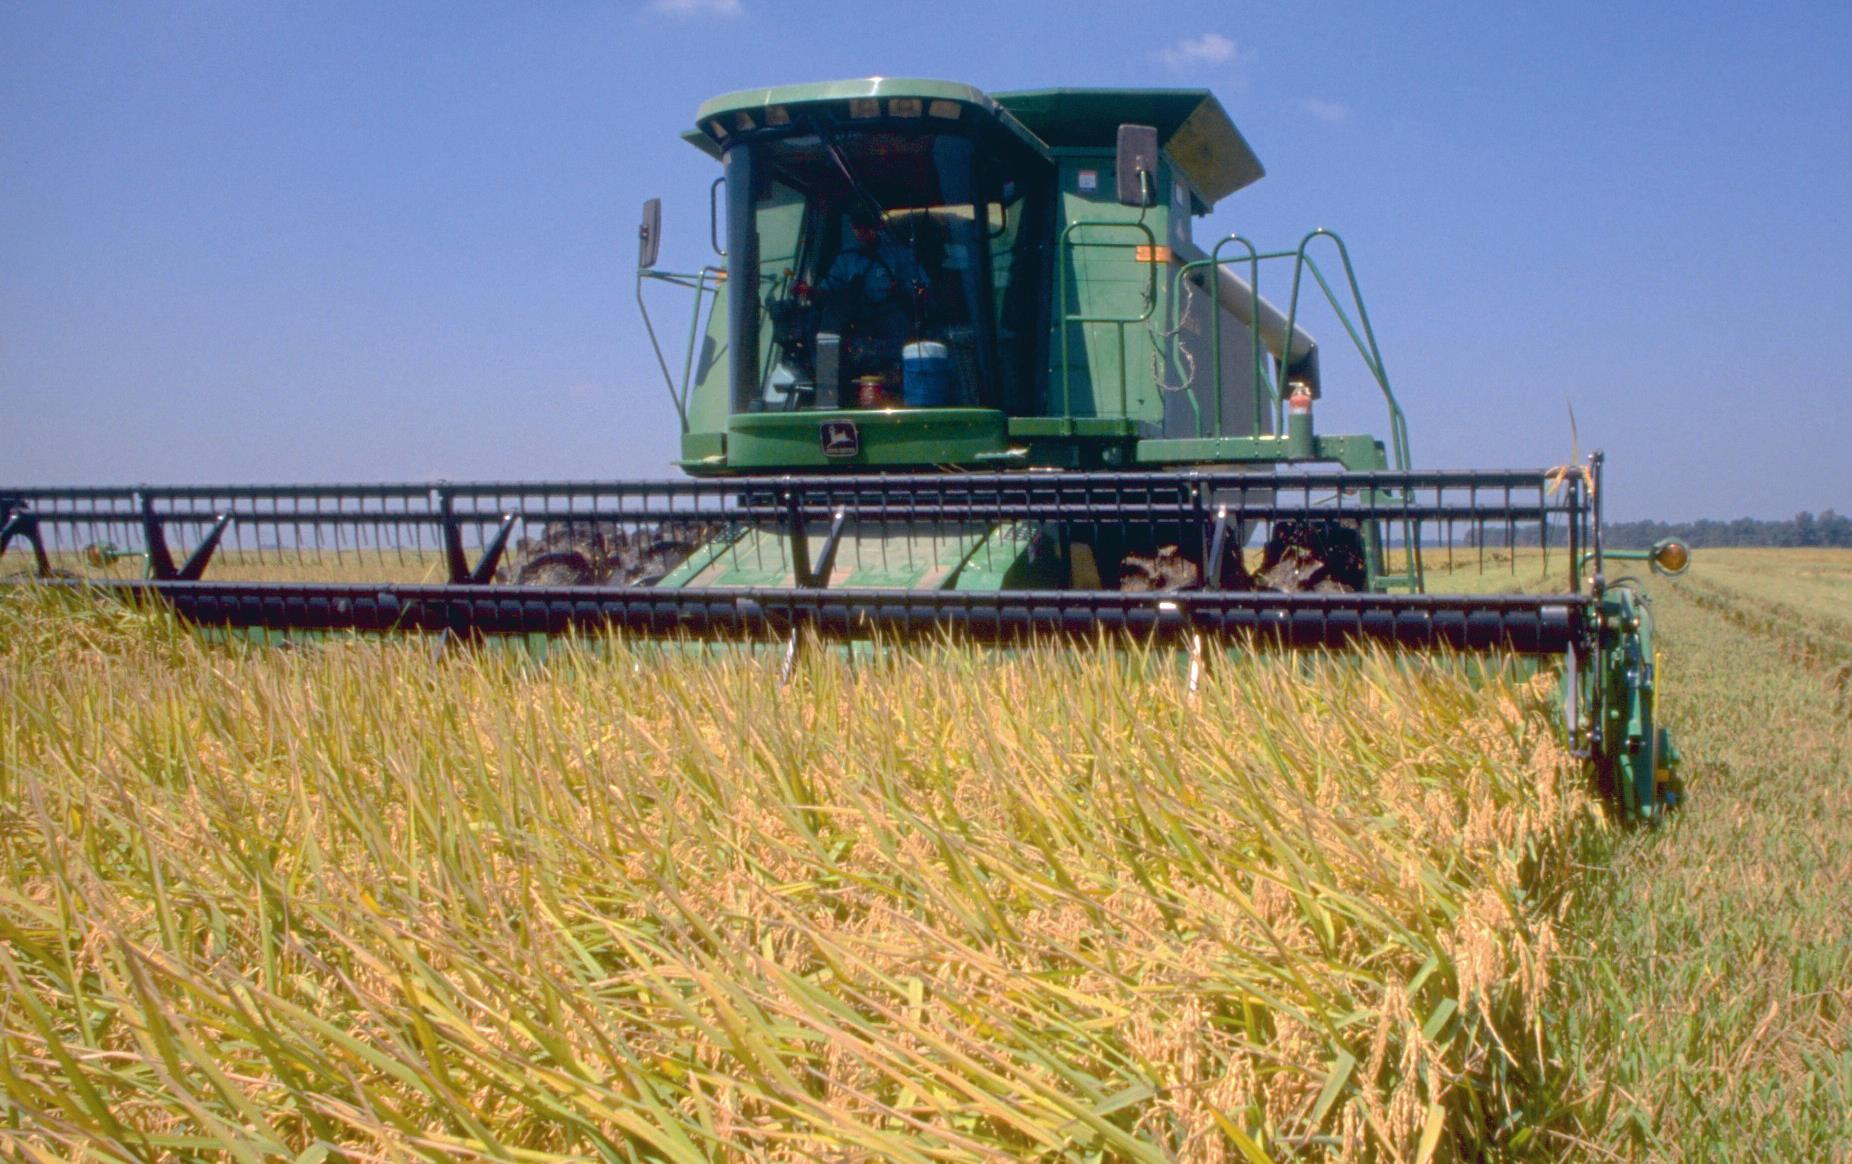 Green harvester cutting in rice field, blue sky background